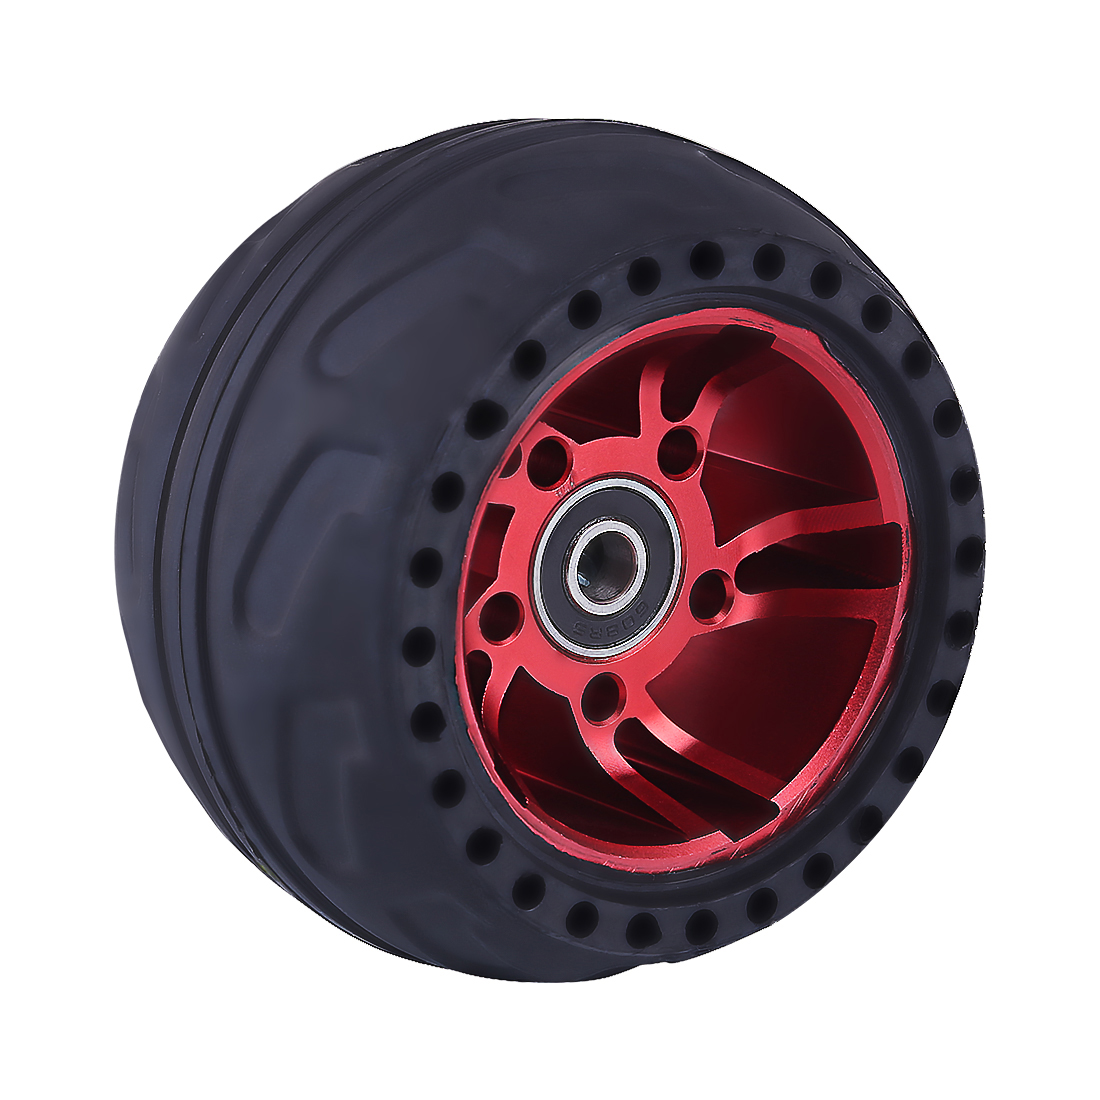 105LMH All Terrain Wheel Rubber Tire - Red